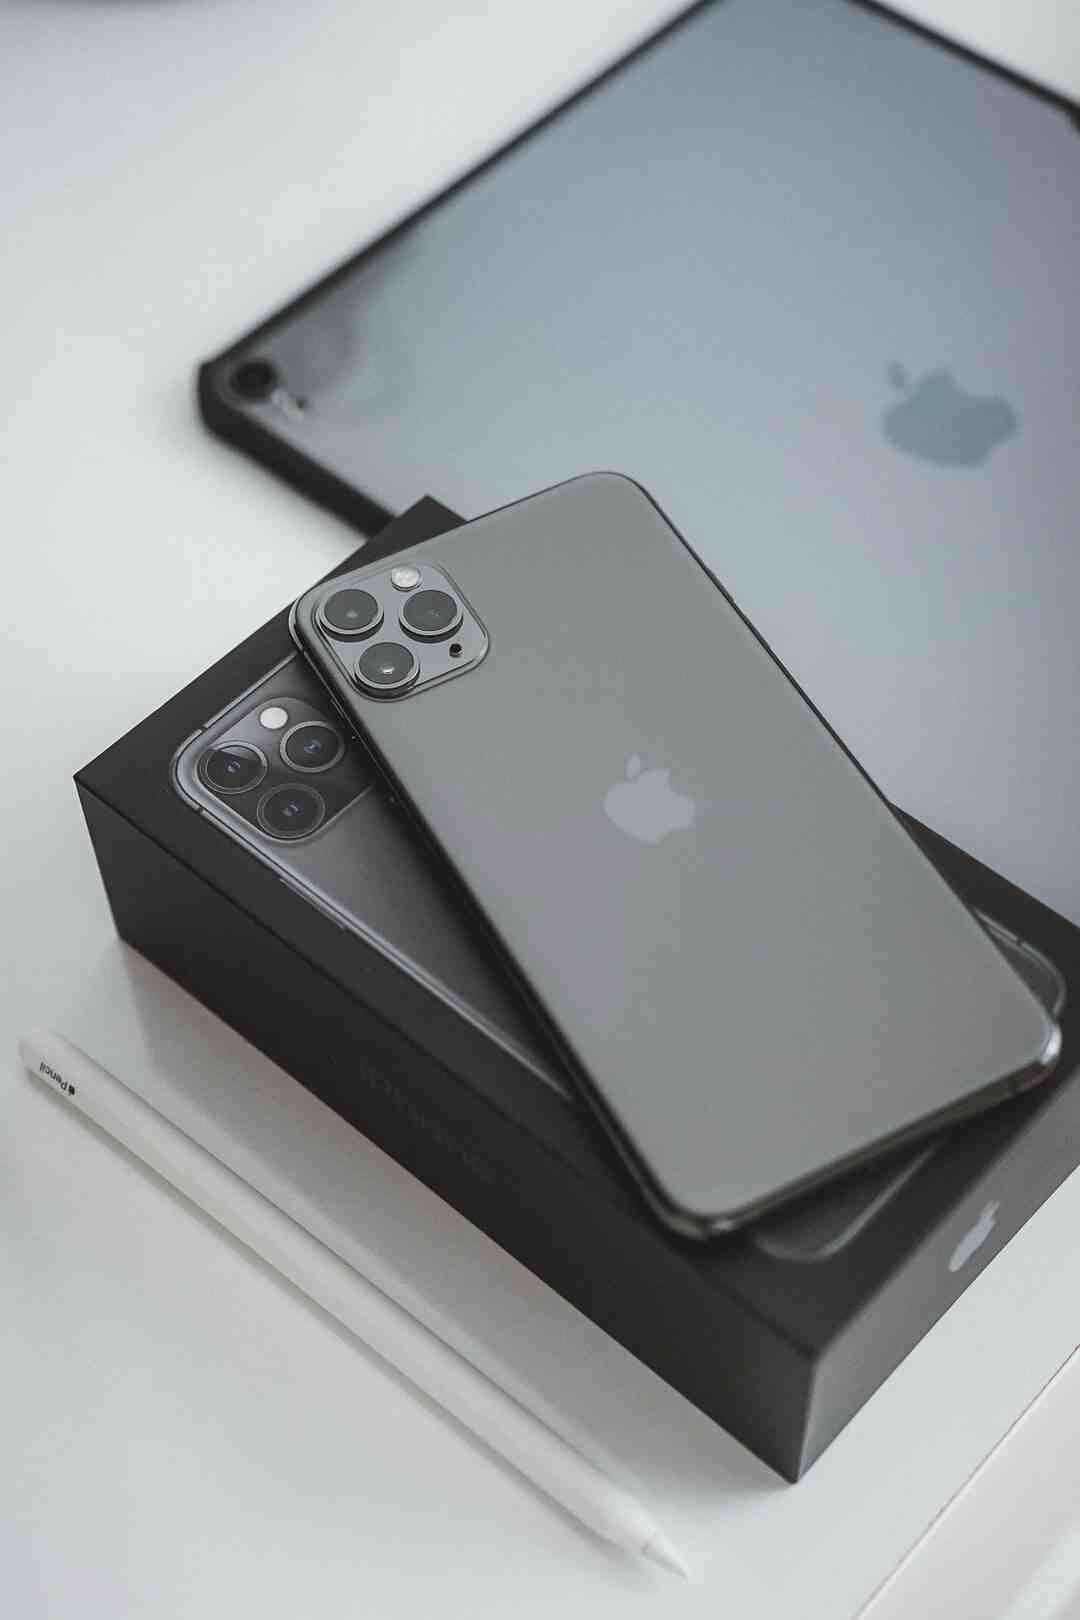 Which model iPhone is the best?